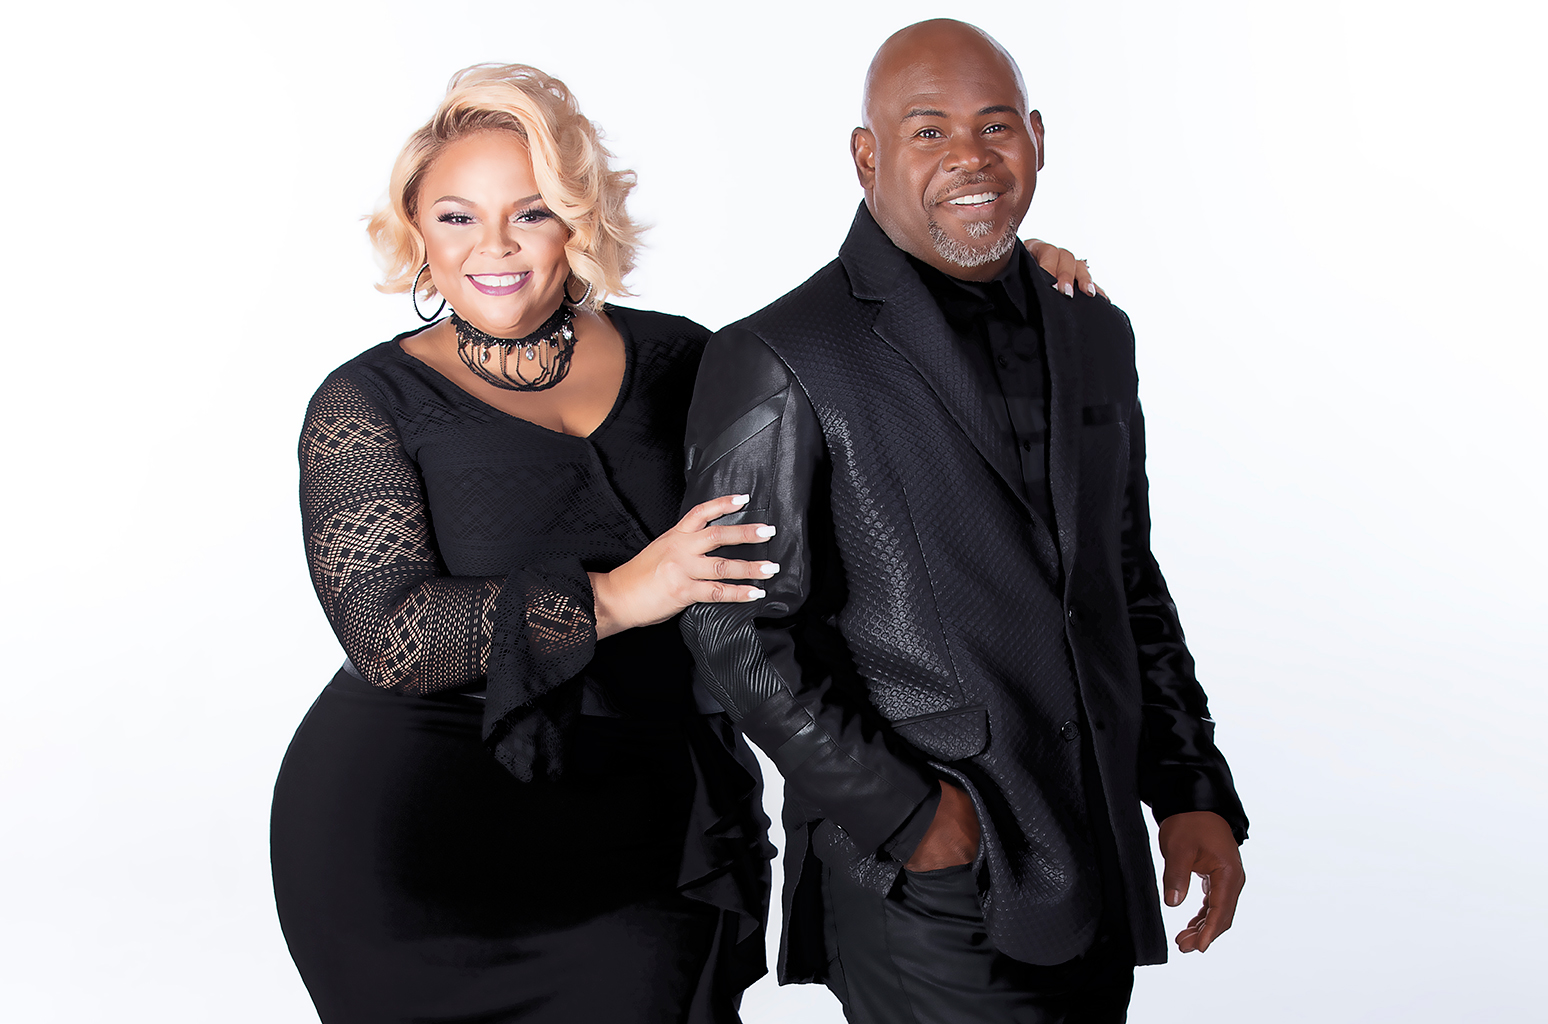 Tiffany father, David and her step-mother, Tamela